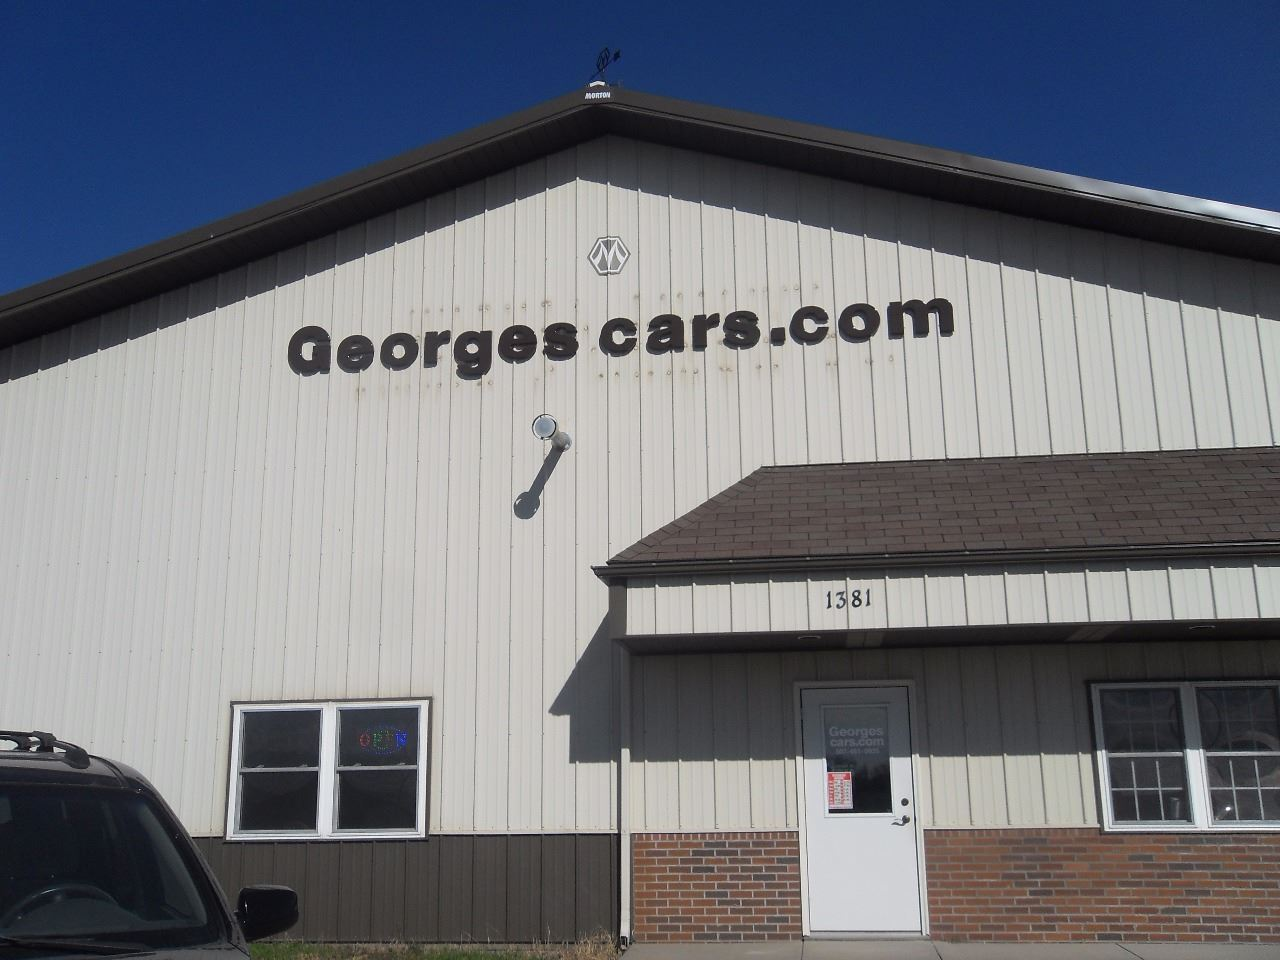 GEORGE'S CARS.COM INC